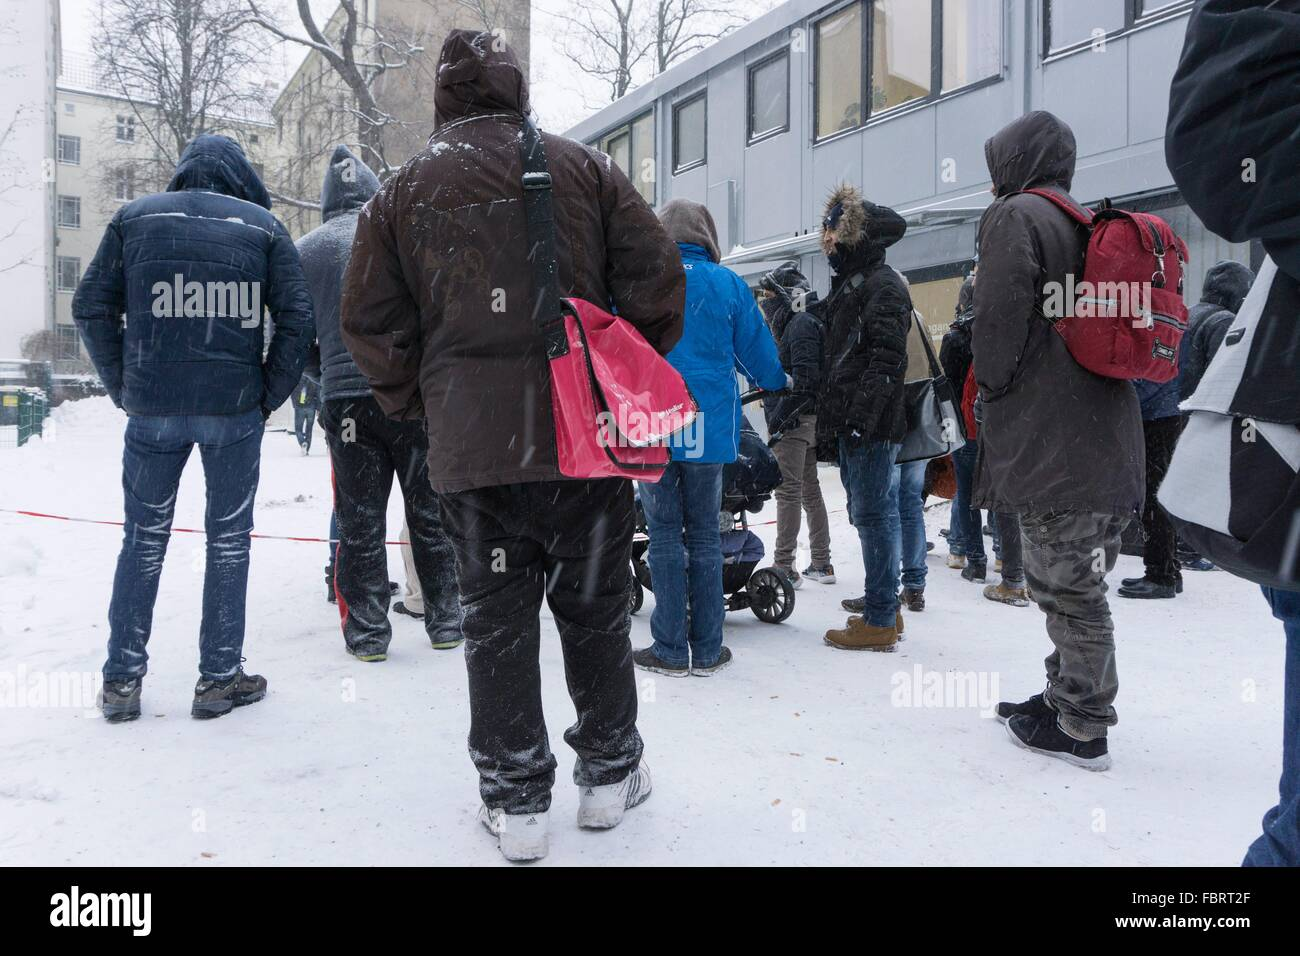 Refugees wait during heavy snowfall outside the Central Registration Office for Asylum Seekers of the State Office Stock Photo